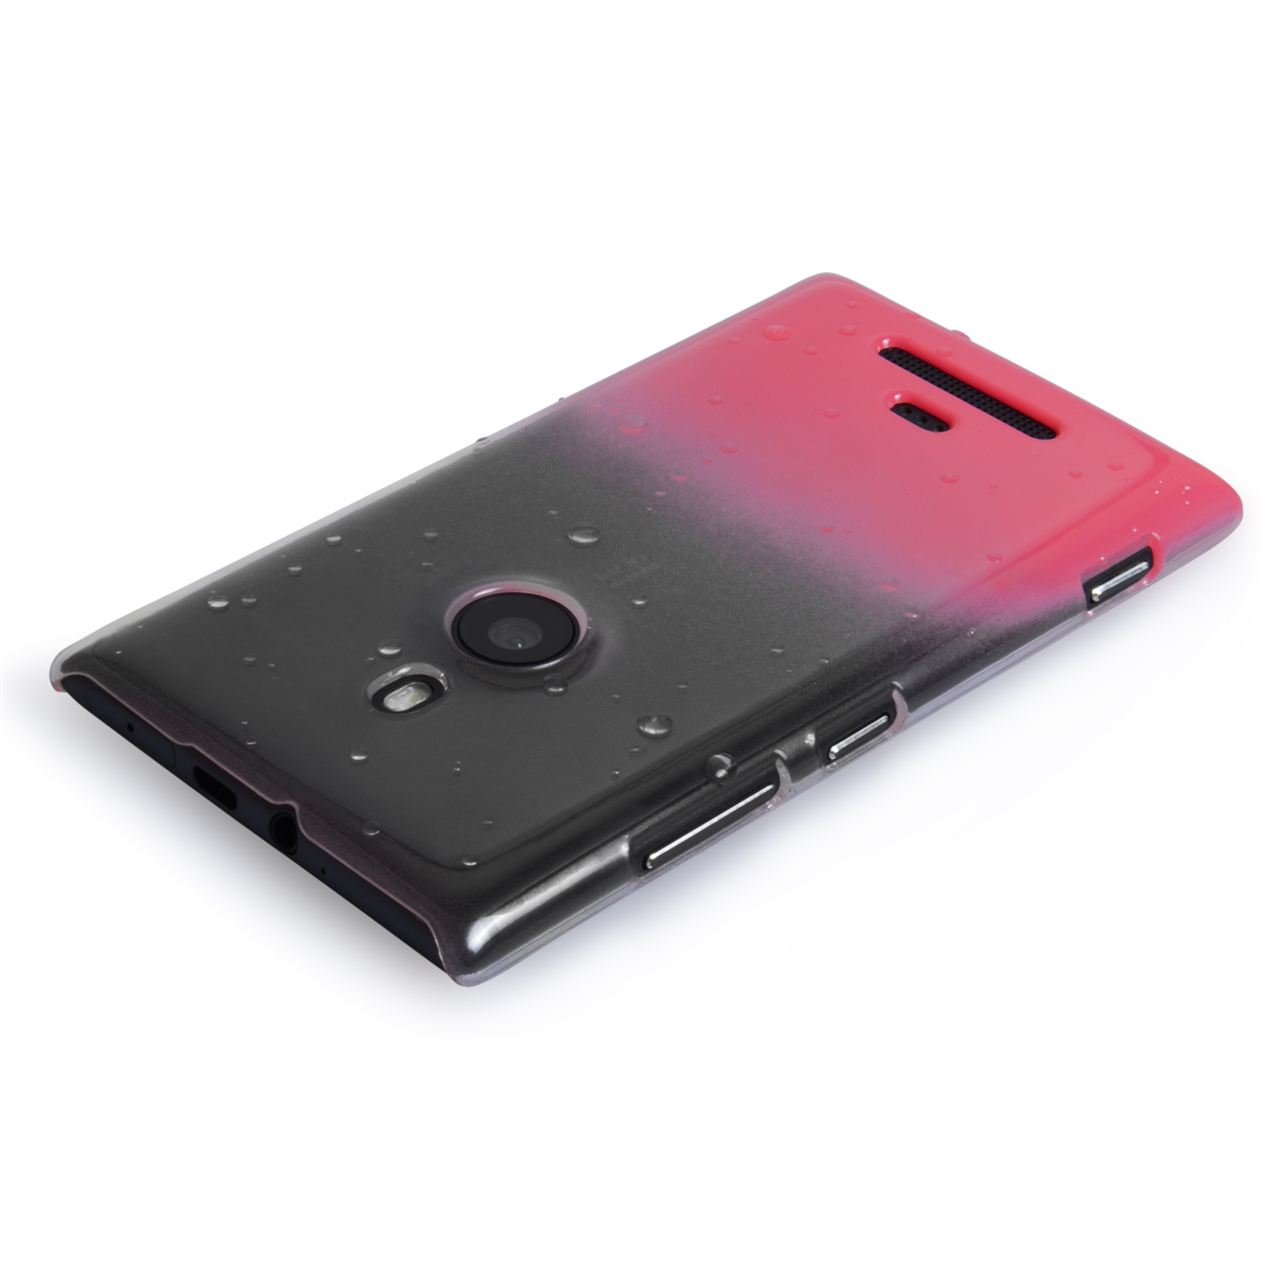 YouSave Accessories Nokia Lumia 925 Raindrop Hard Case - Pink